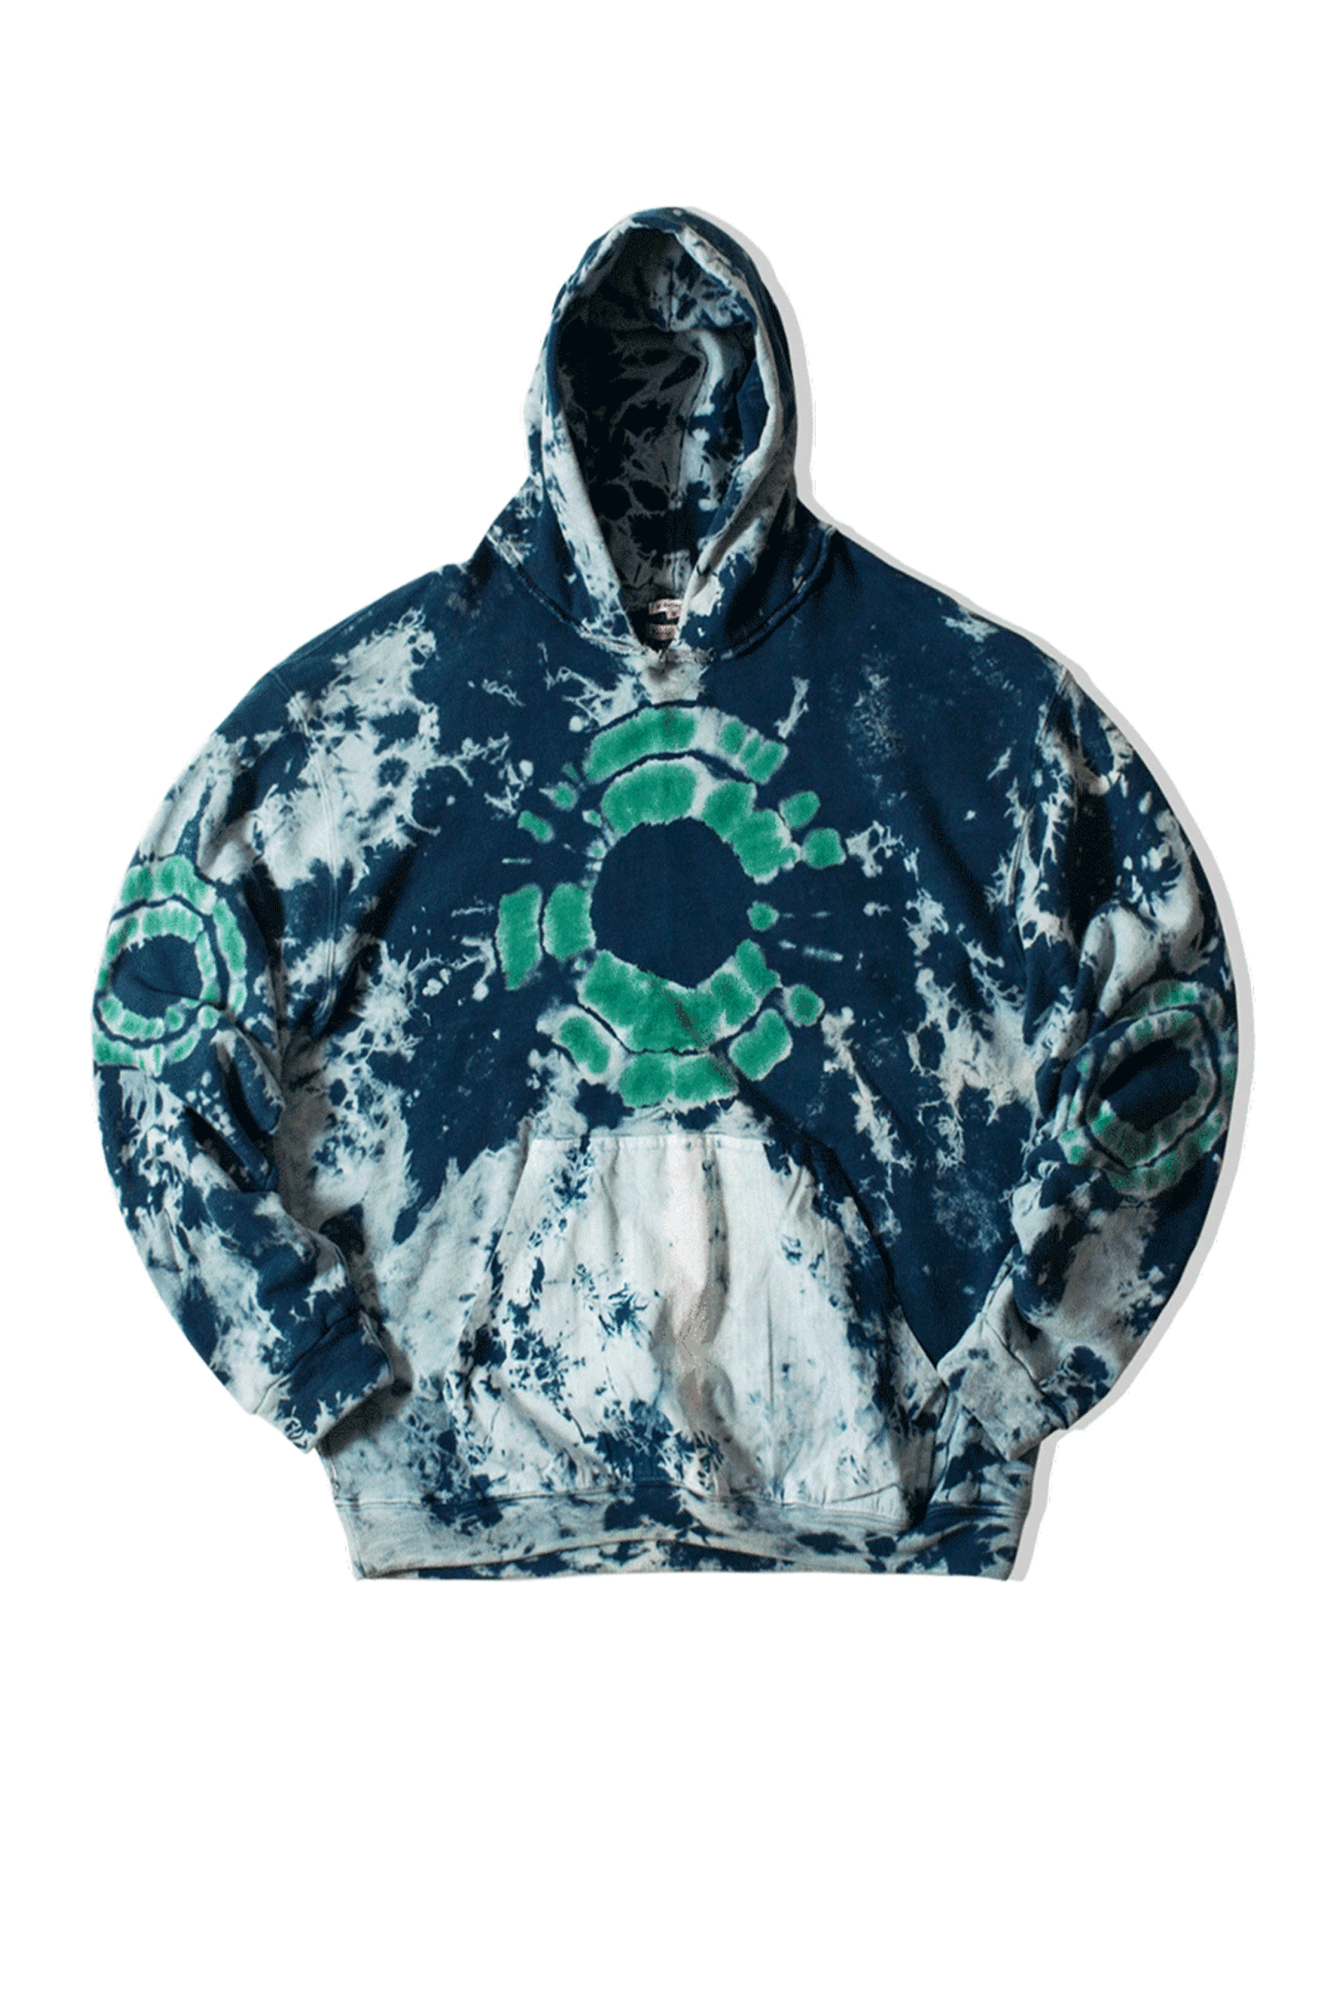 Dr. Collectors Hooded sweatshirts Comfort Hoodie Shibori Blue COMFORT#HOODHIBORI#BLUE#XS - One Block Down